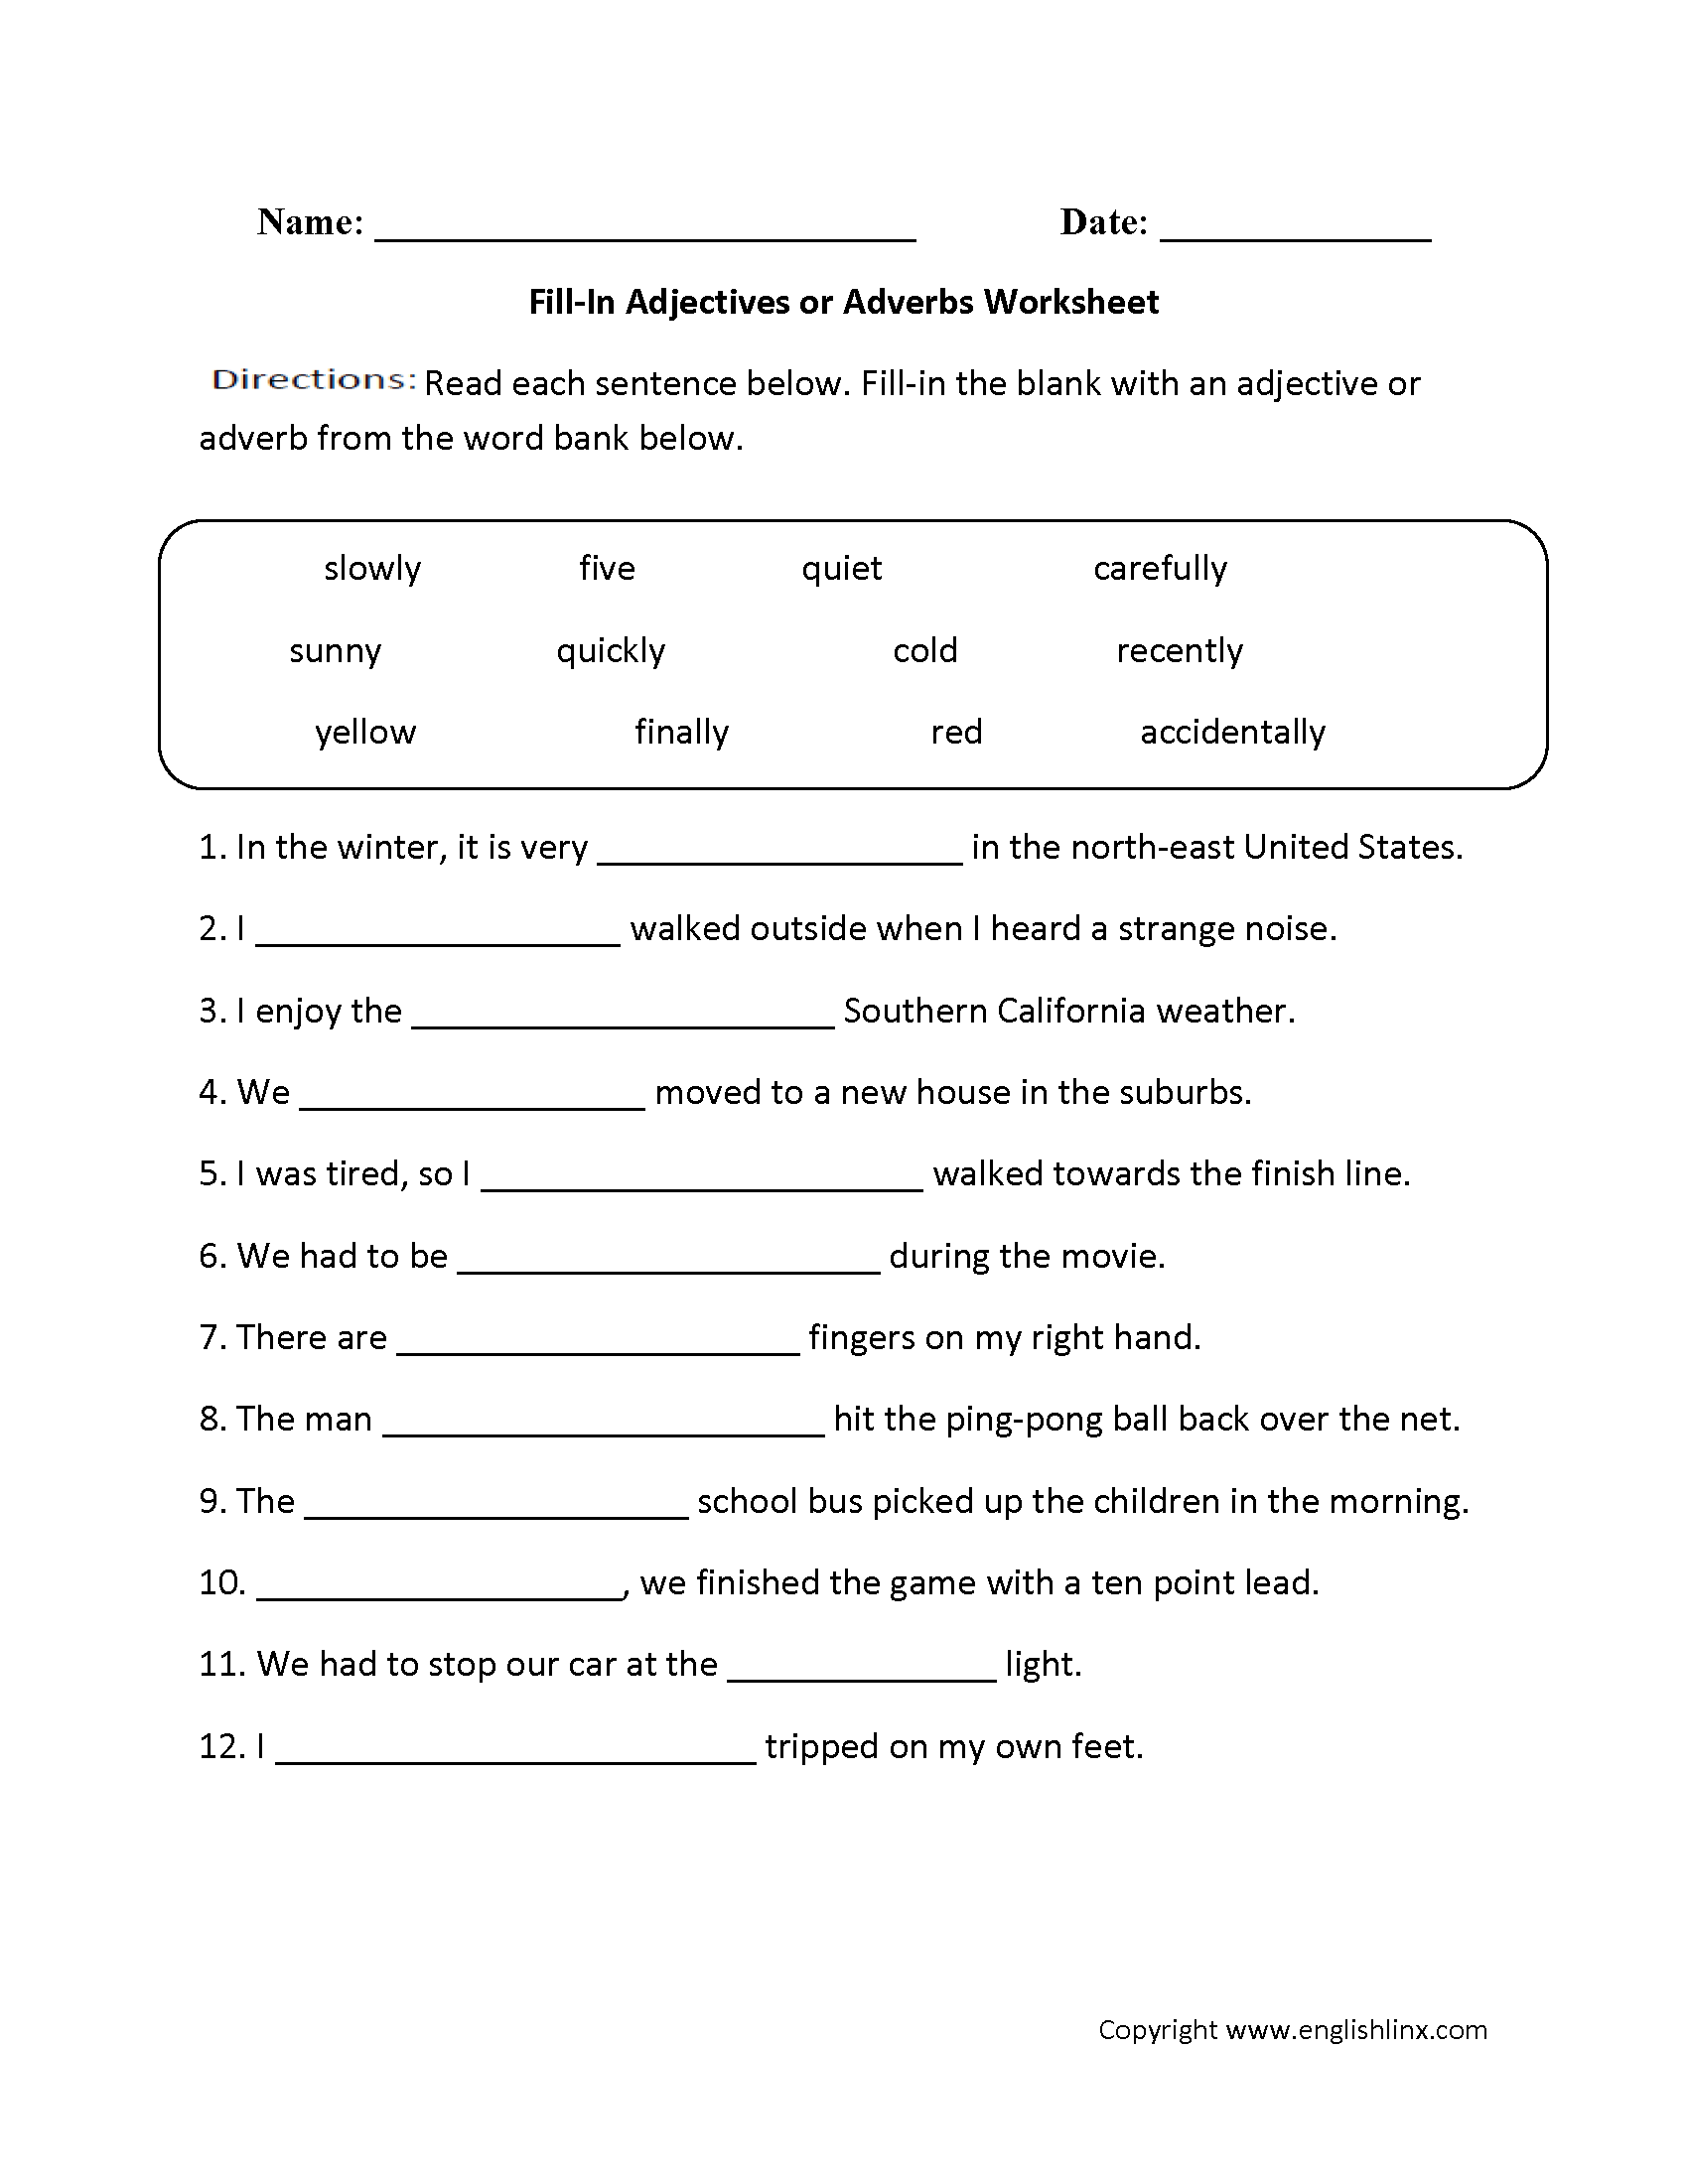 Worksheets Fill In The Blank Worksheets adjectives or adverbs worksheets fill in worksheet